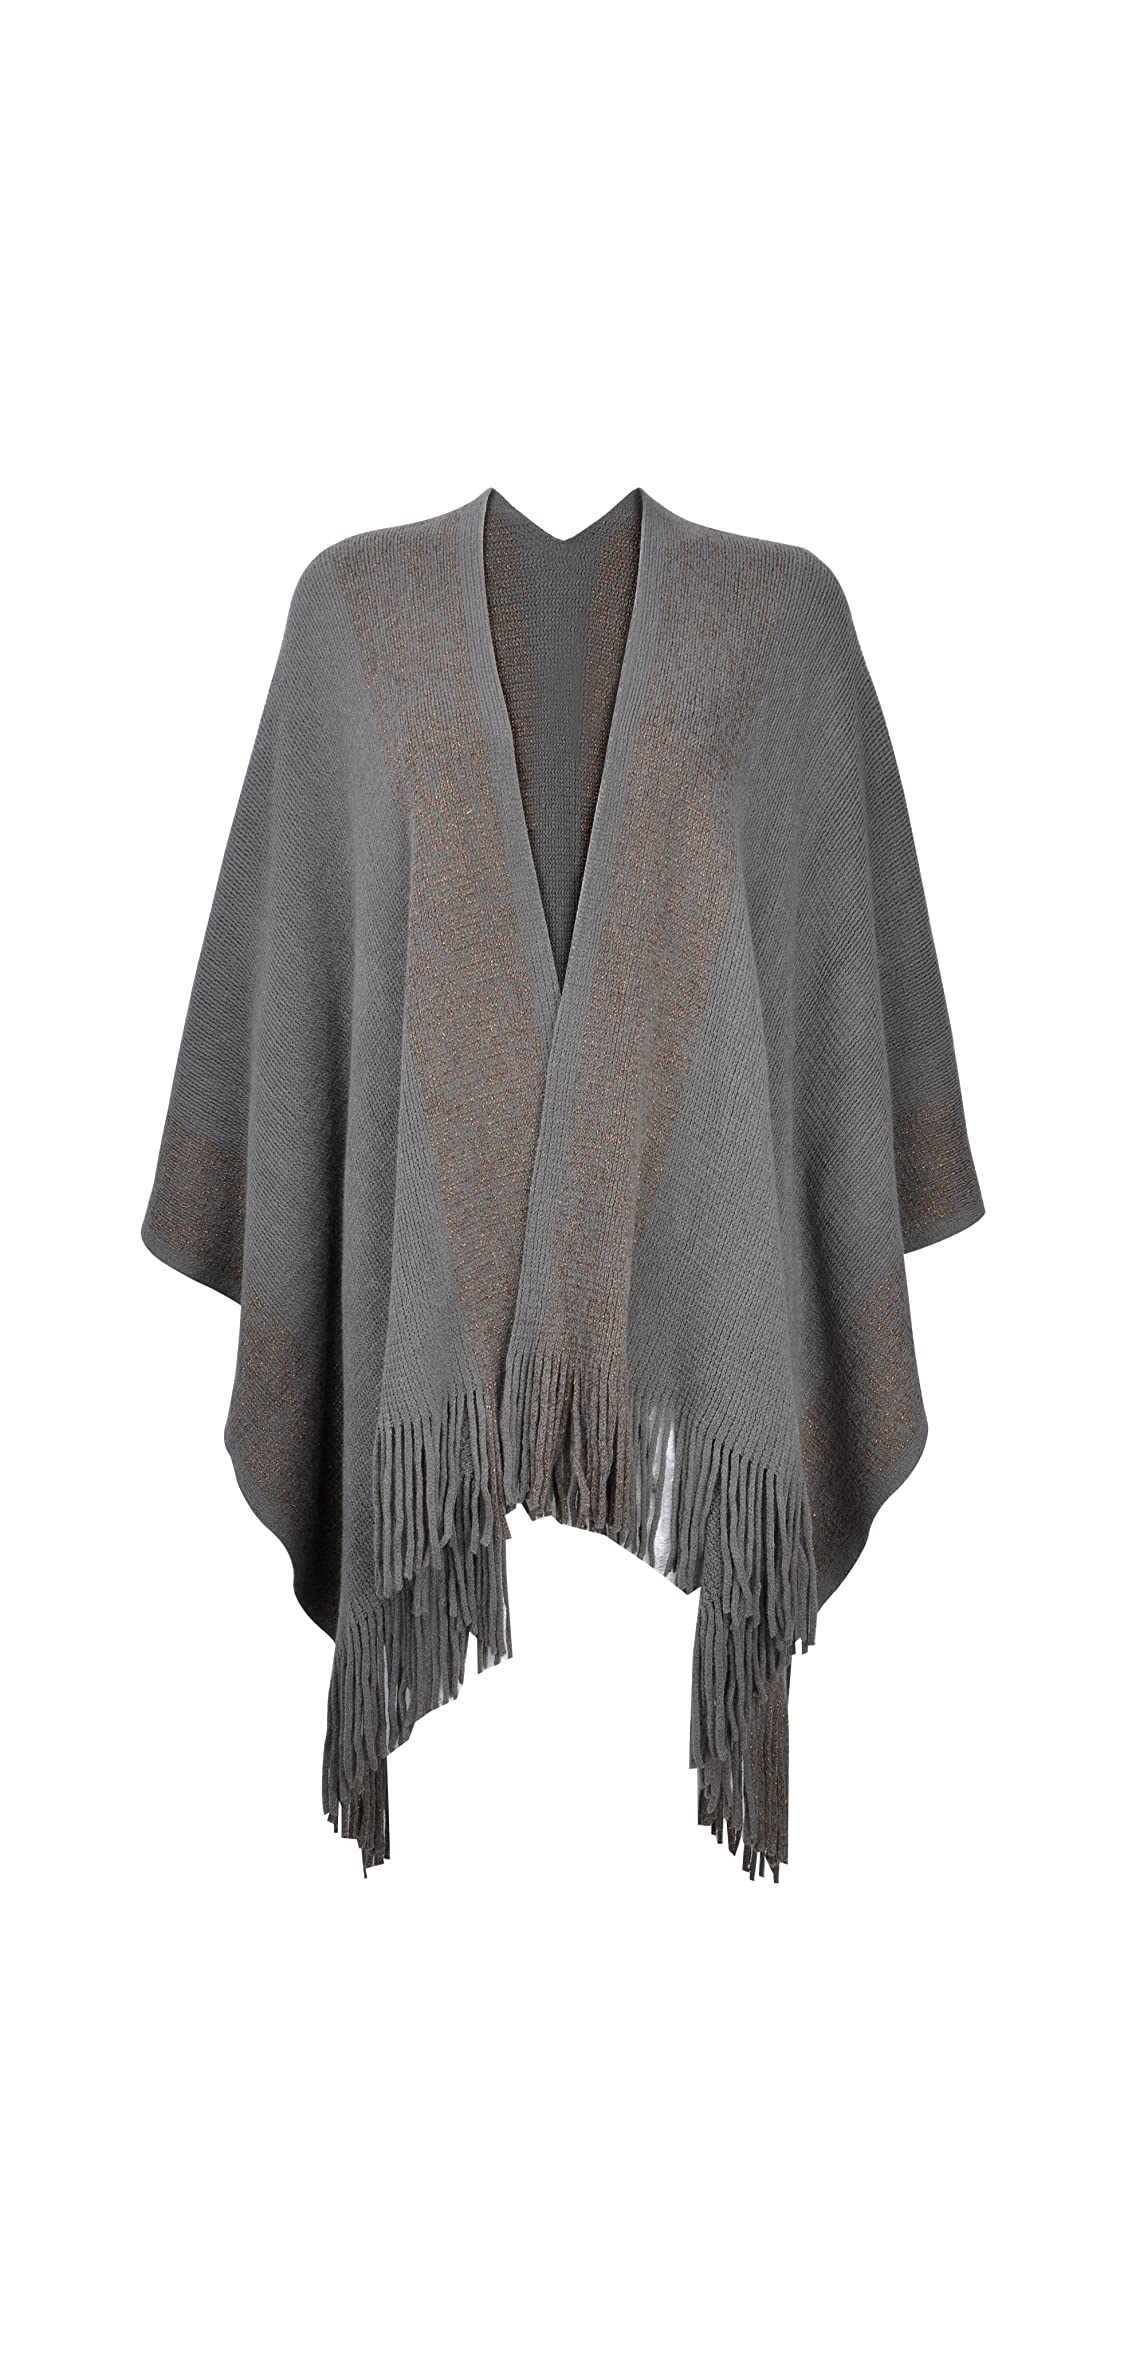 Women's Shawl Golden Trim Knit Blanket Wrap Fringe Poncho